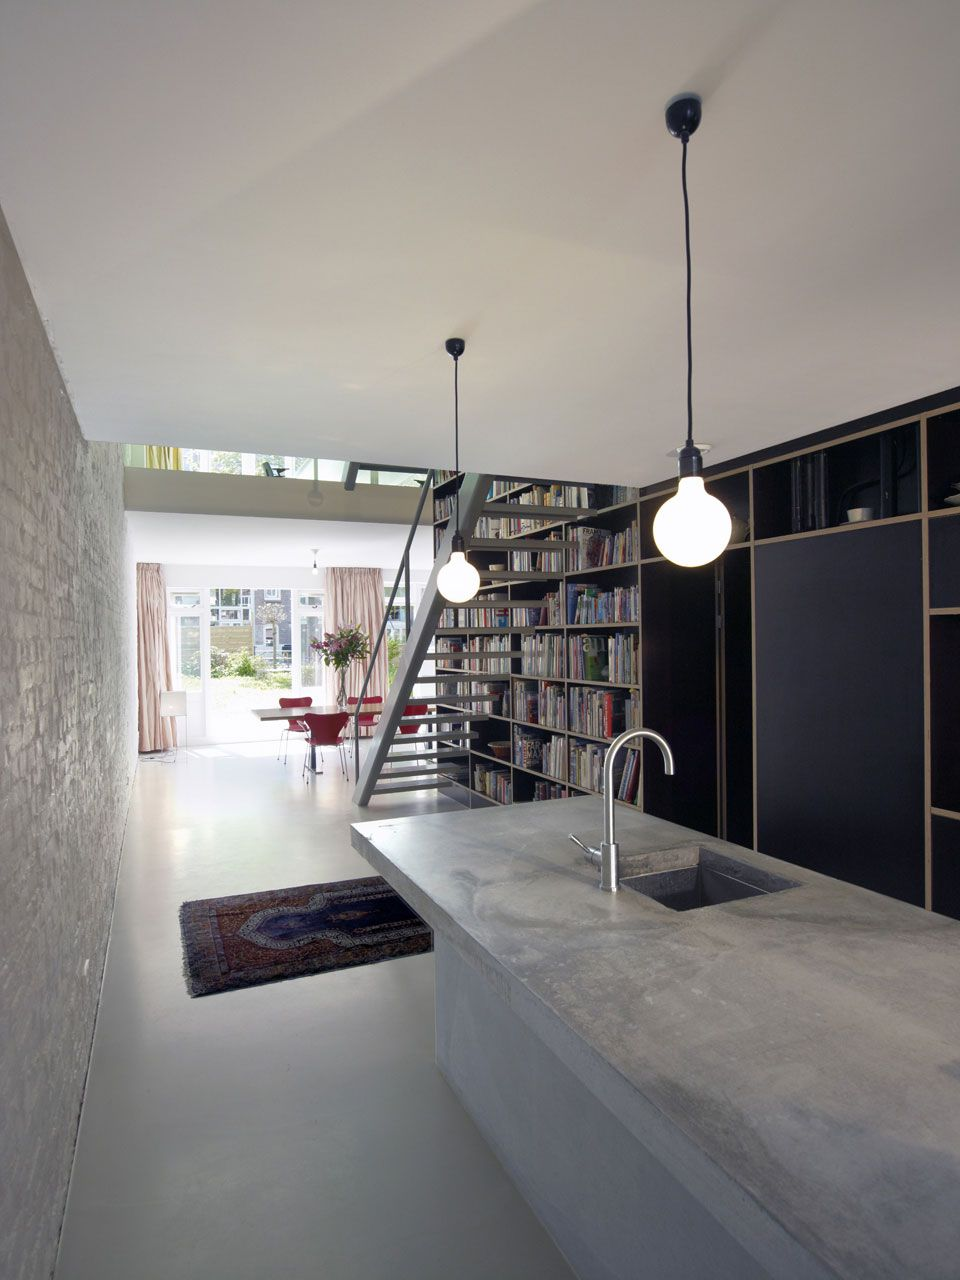 Vertical loft concrete kitchen